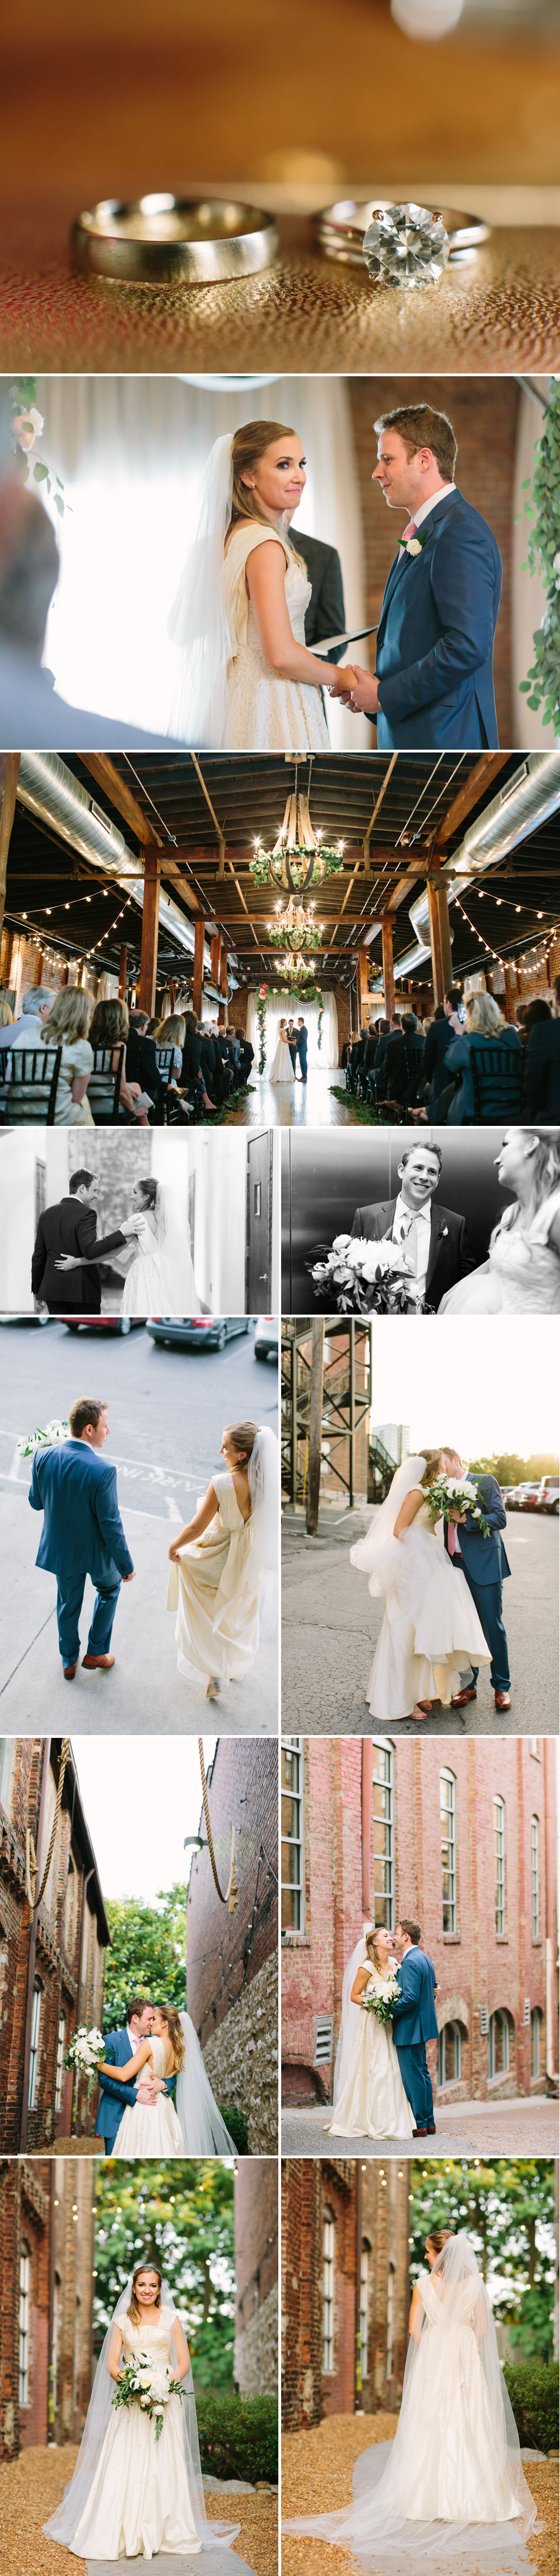 Nashville_Wedding_Photographers_4.jpg